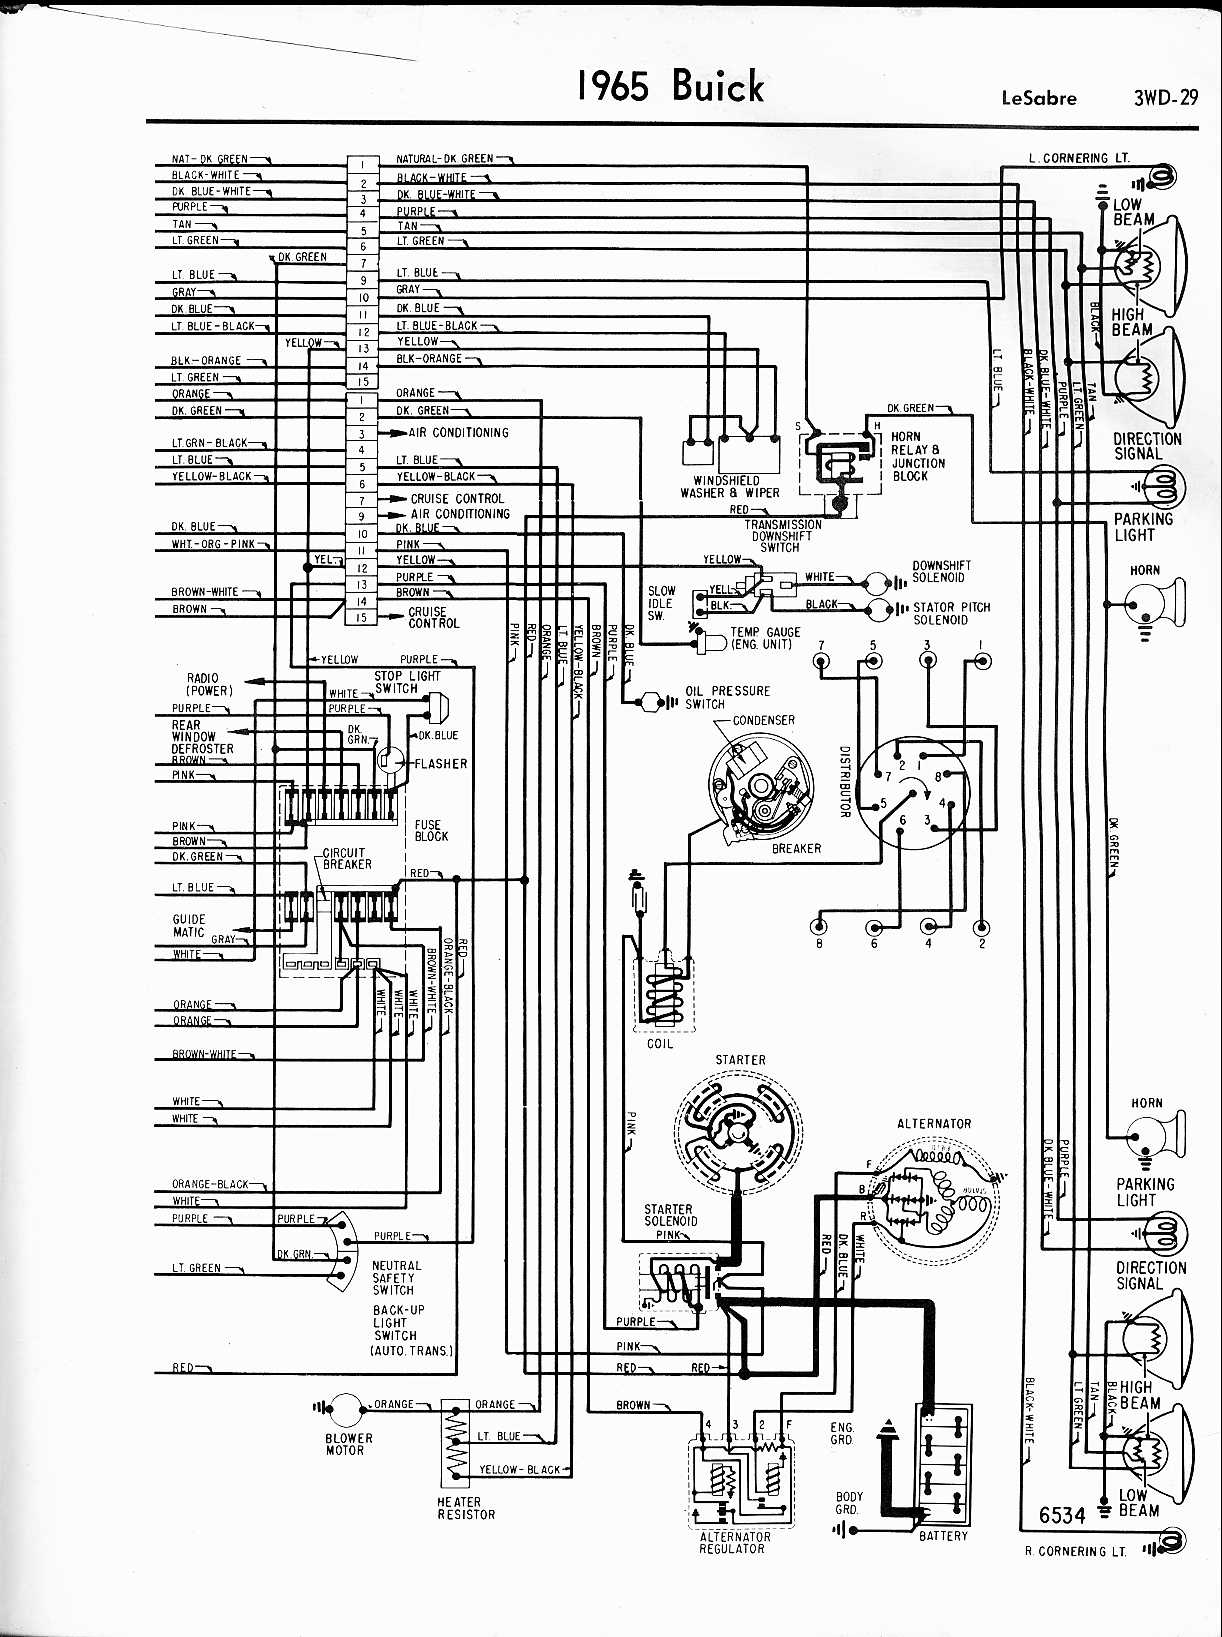 1991 corvette engine wiring diagram buick wiring diagrams 1957 1965 1985 corvette engine wiring diagram #15